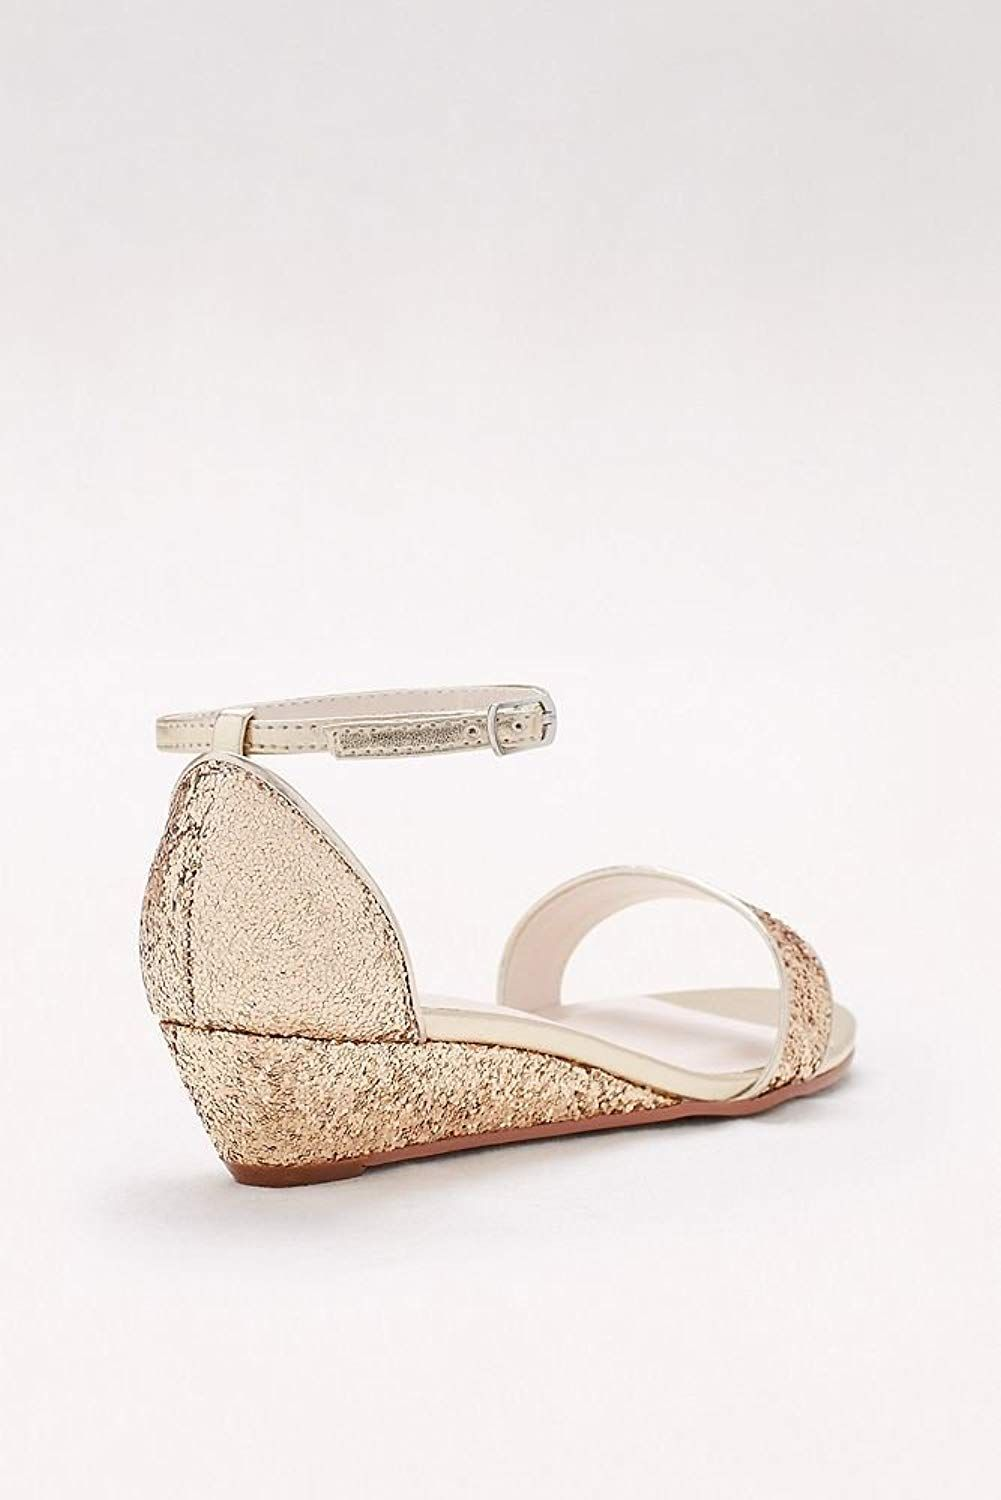 c2ccde7bbd65 David s Bridal Glittery Low-Wedge Sandals Style Maye   Want to know more